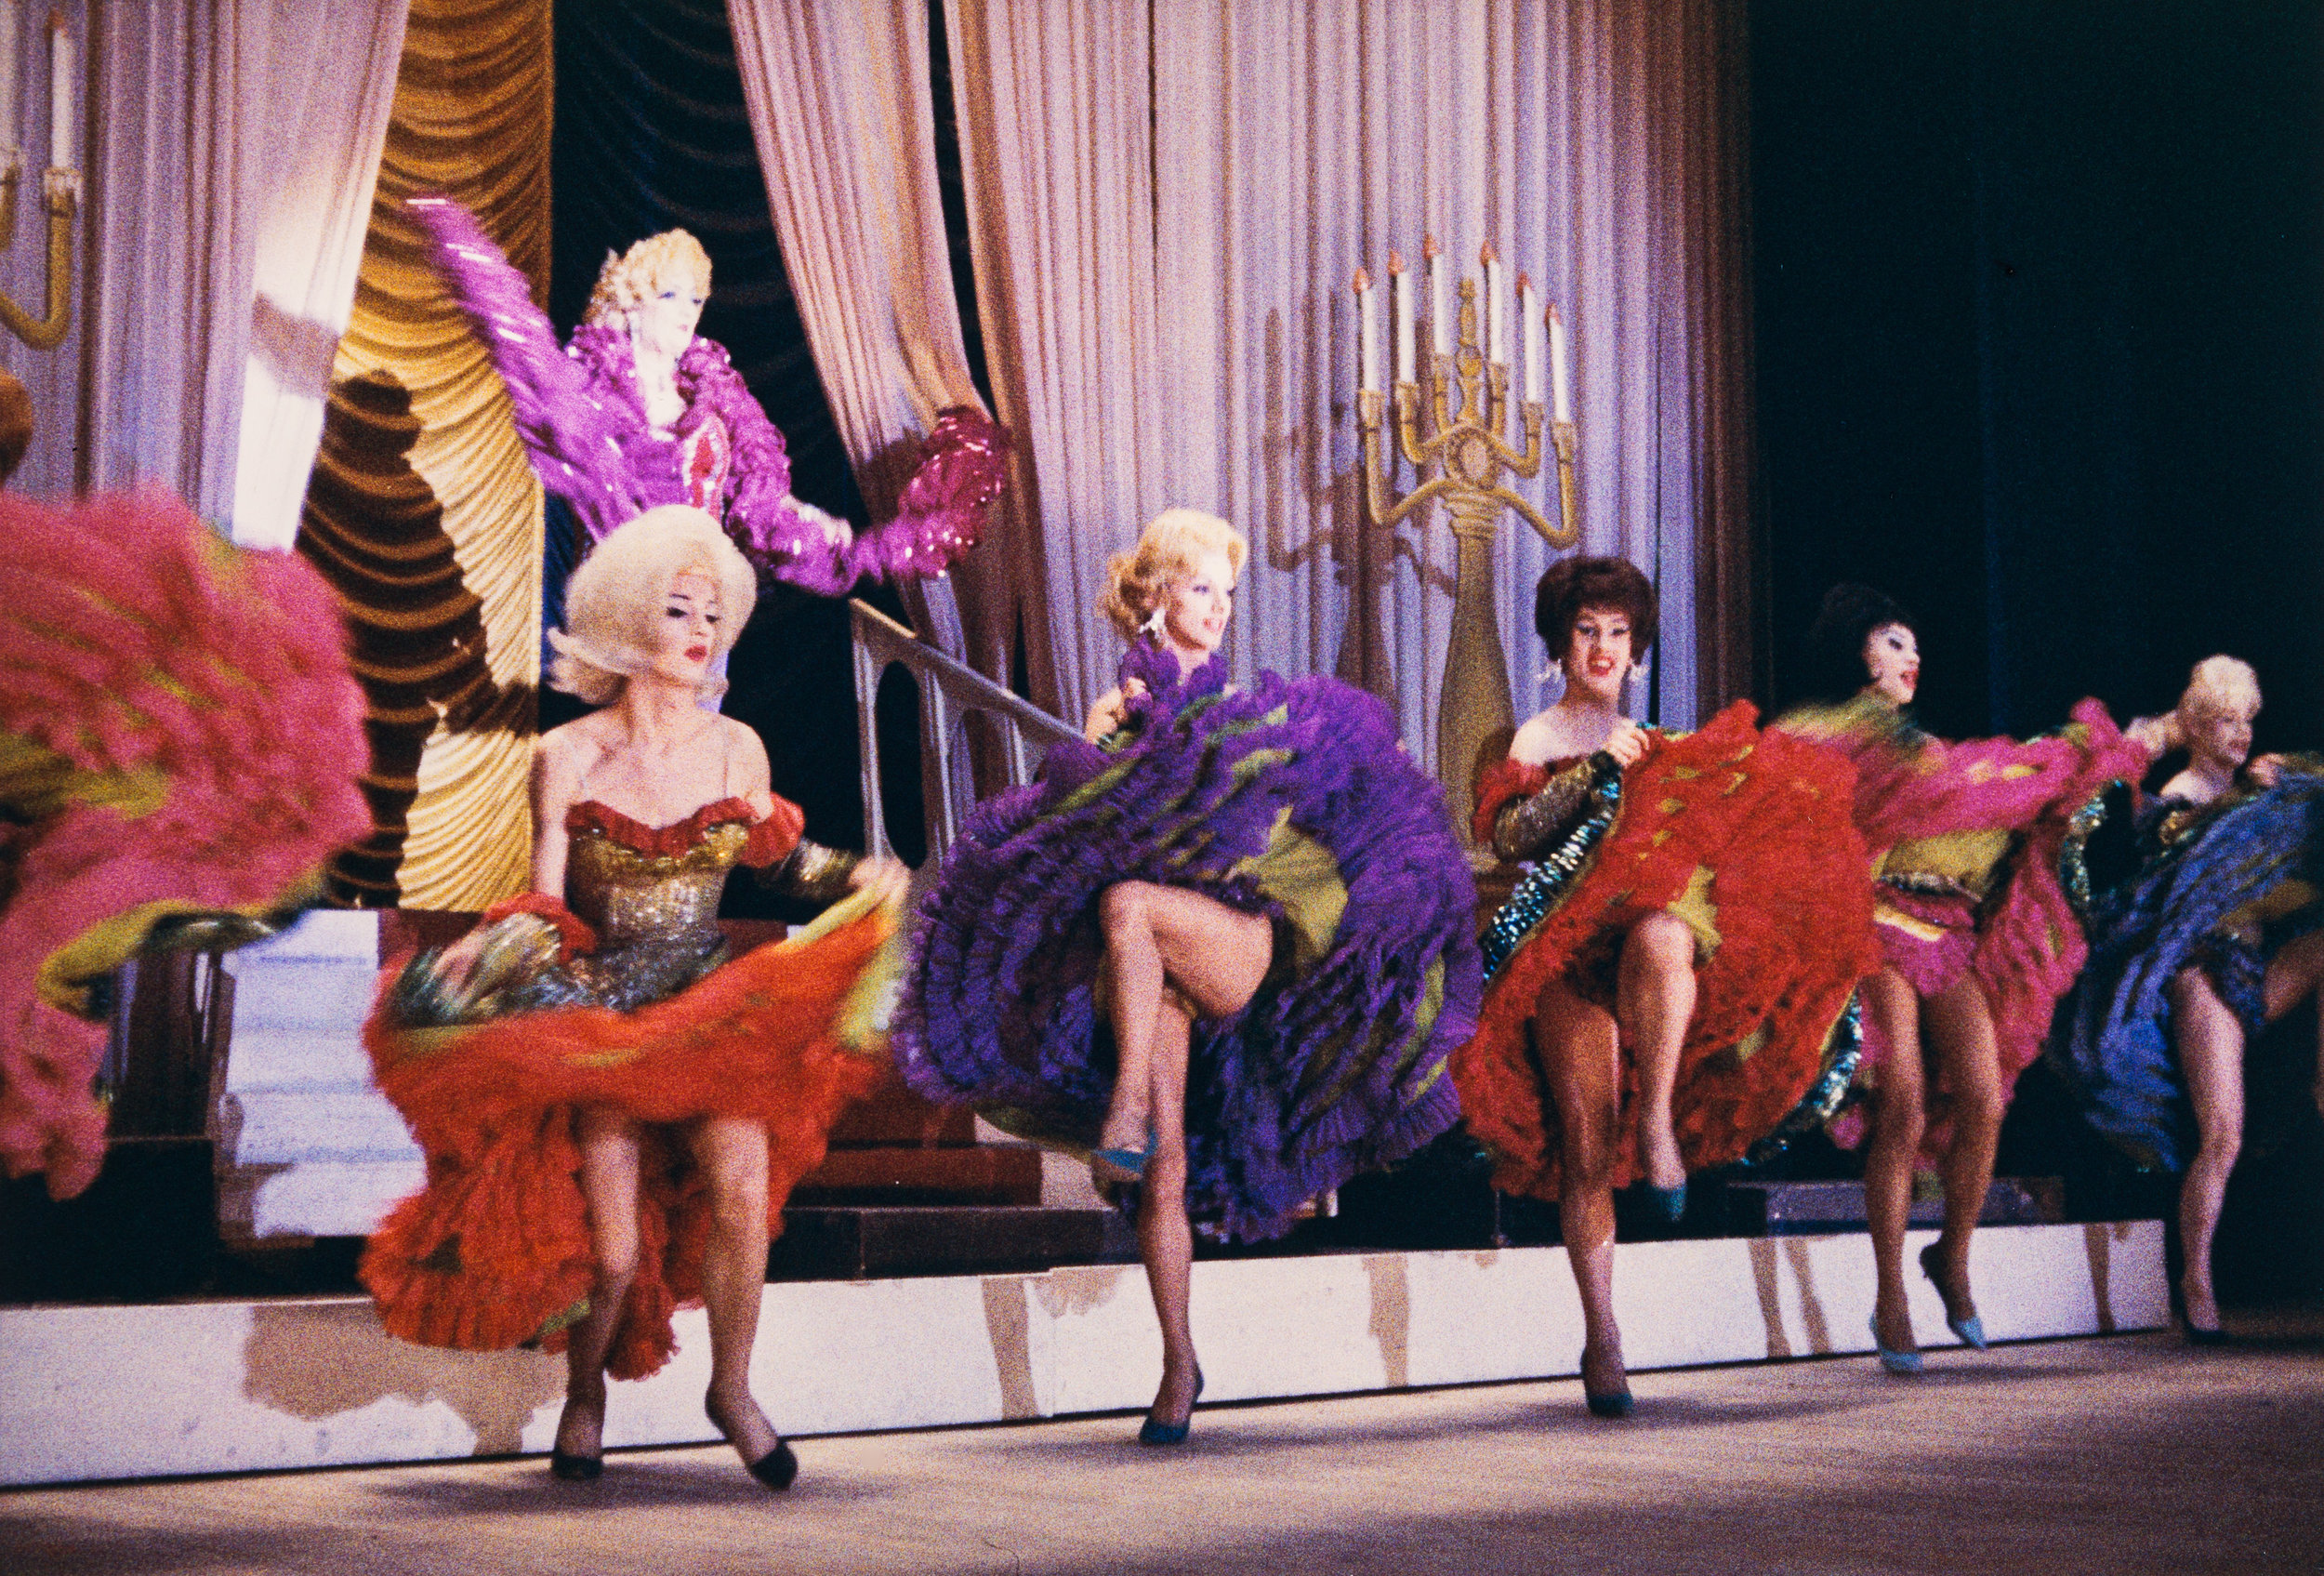 Dancing on stage in drag, Jewel Box Revue, 1962